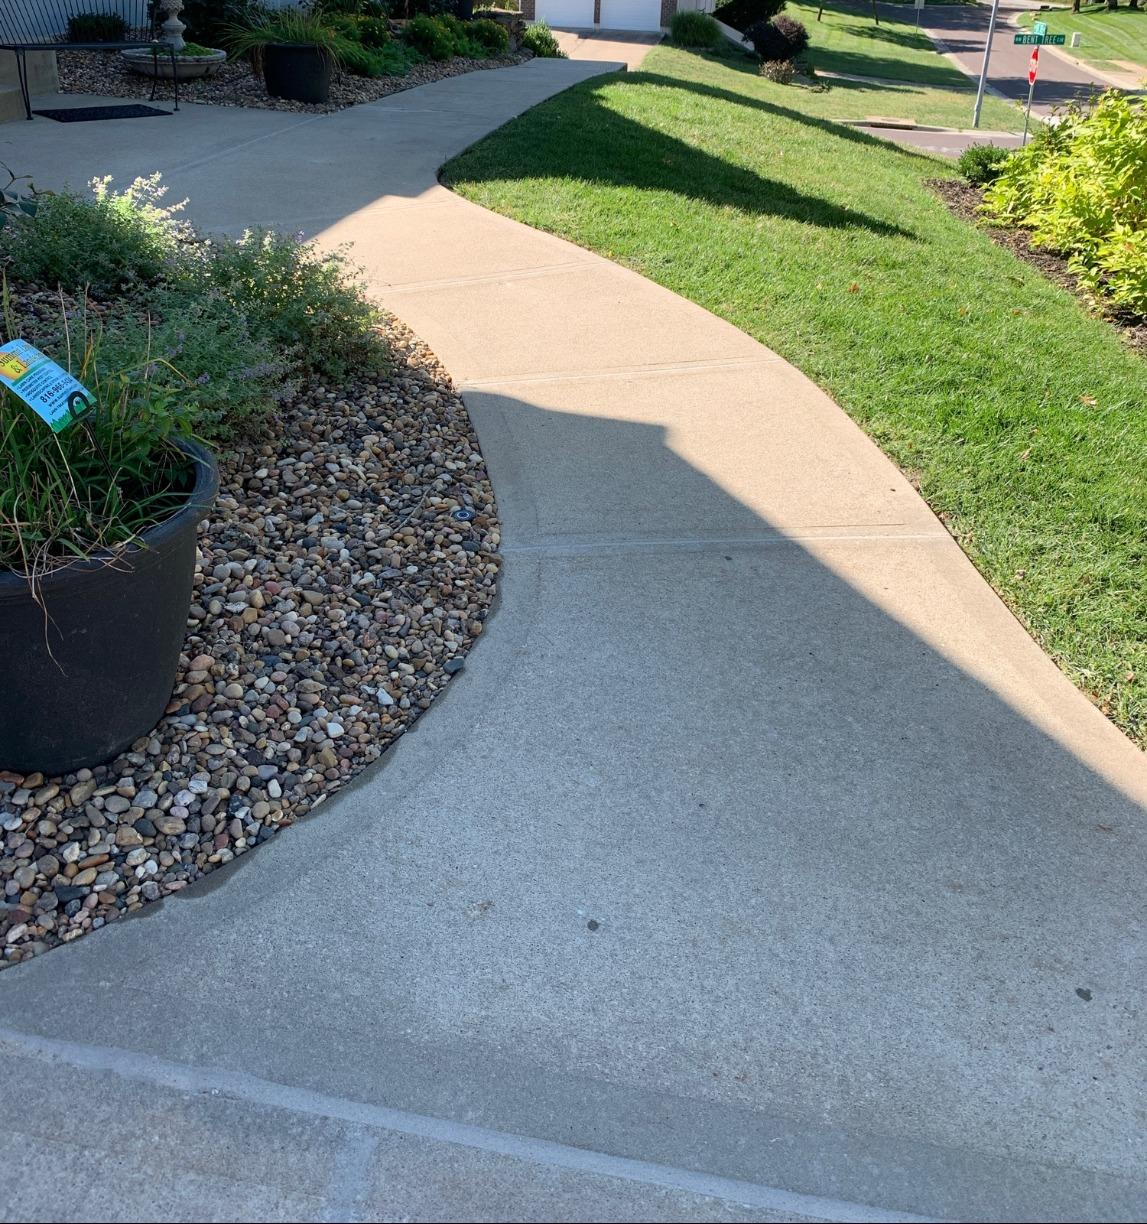 Concrete Repair in Lee's Summit, MO - After Photo